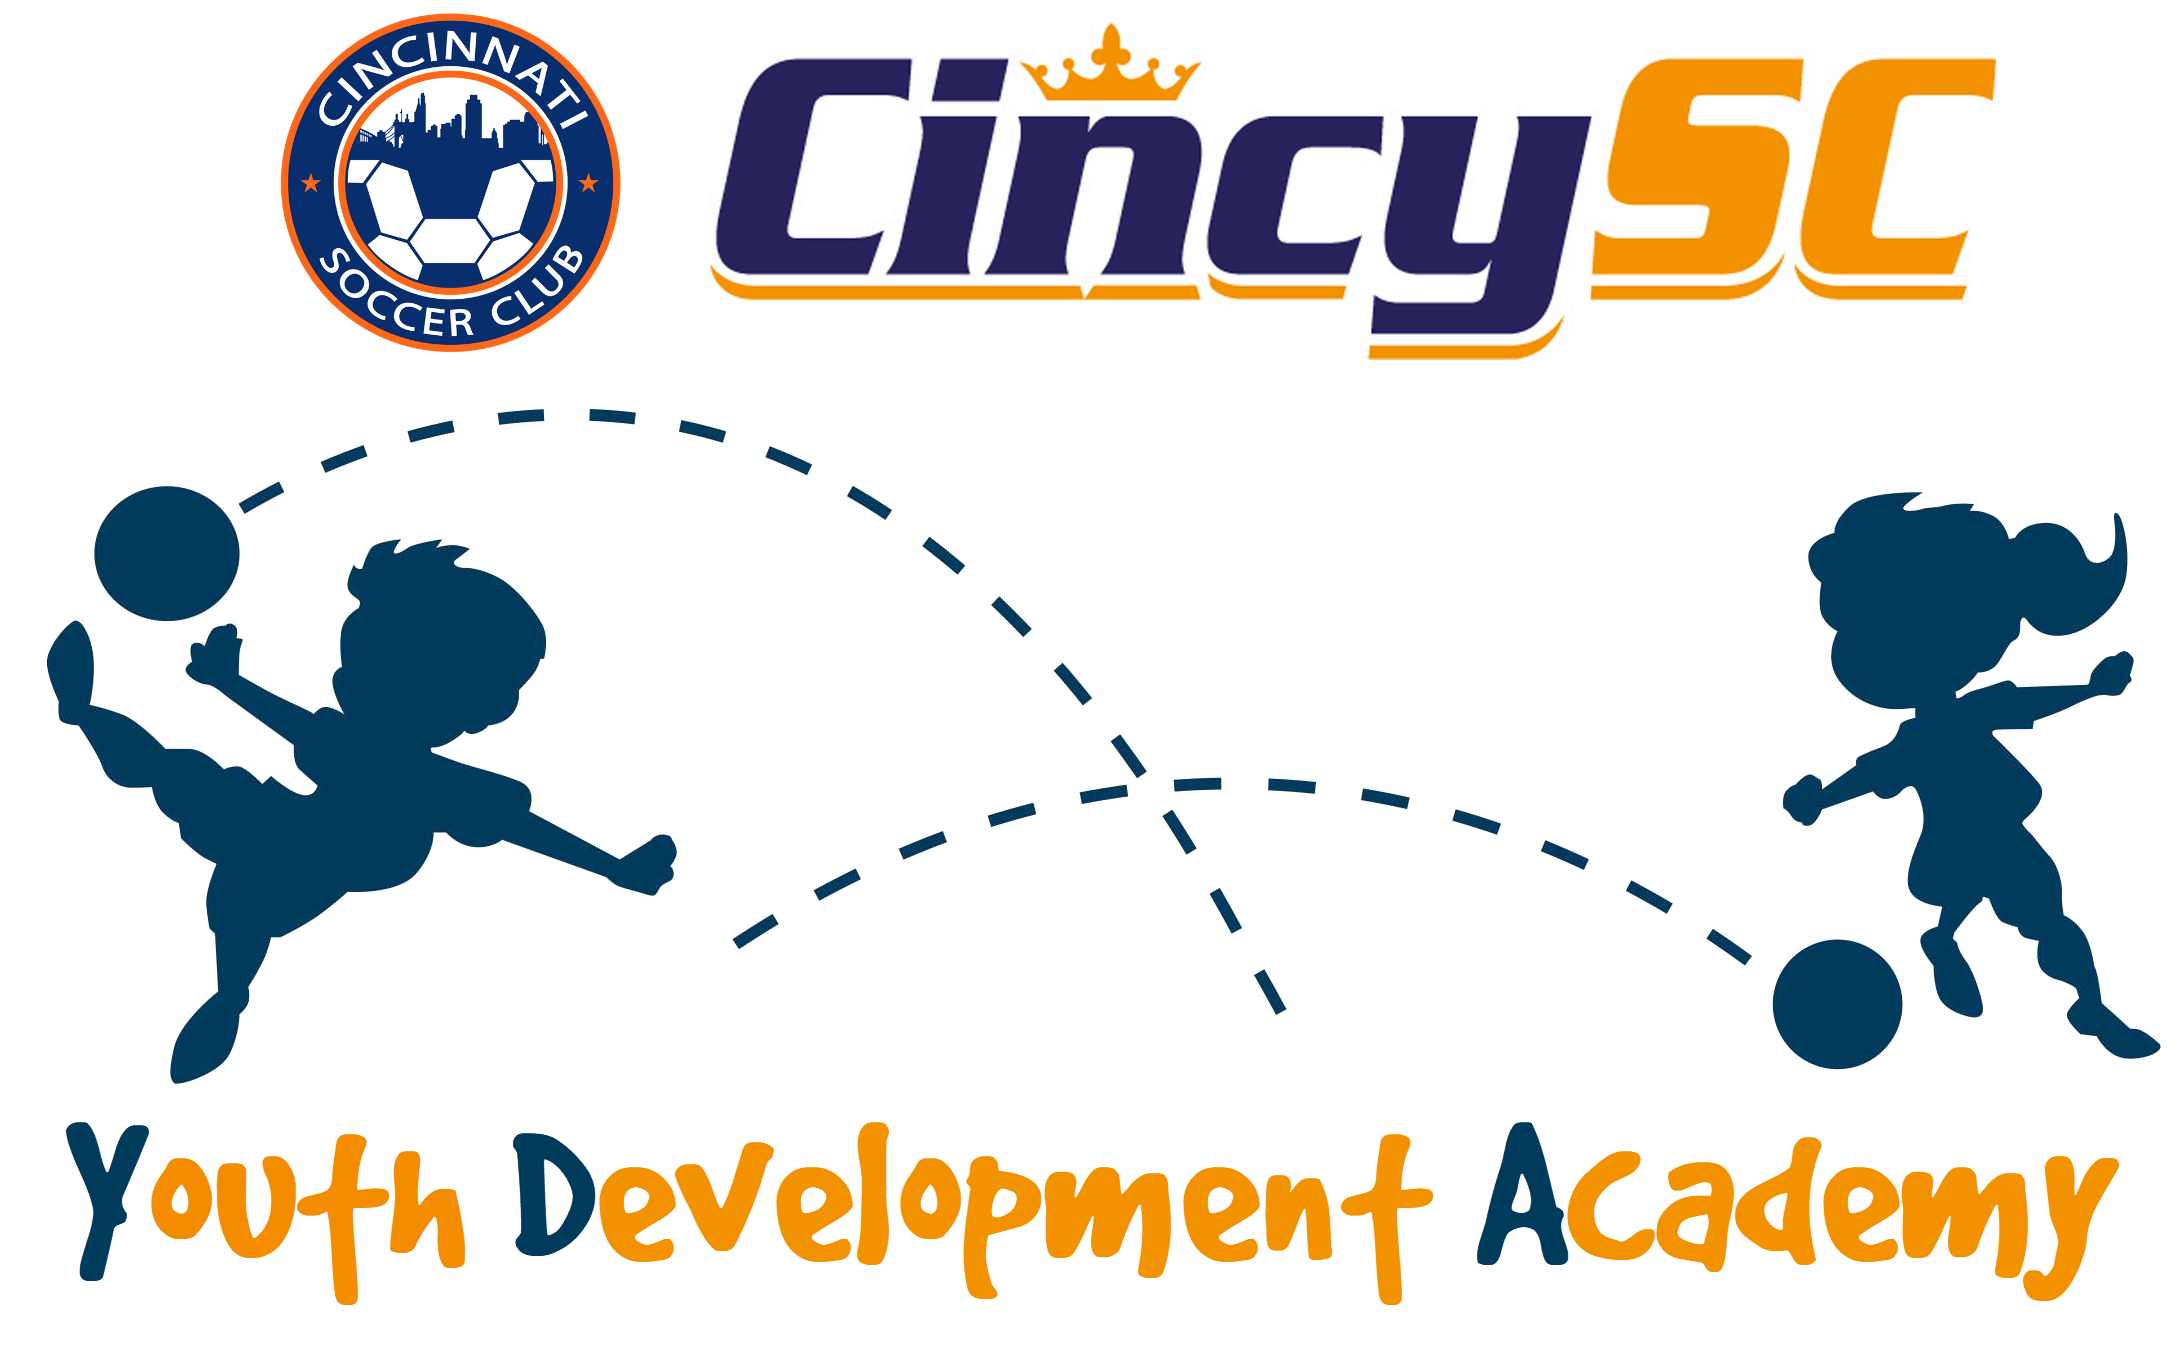 Cincy SC Youth Development Academy Logo